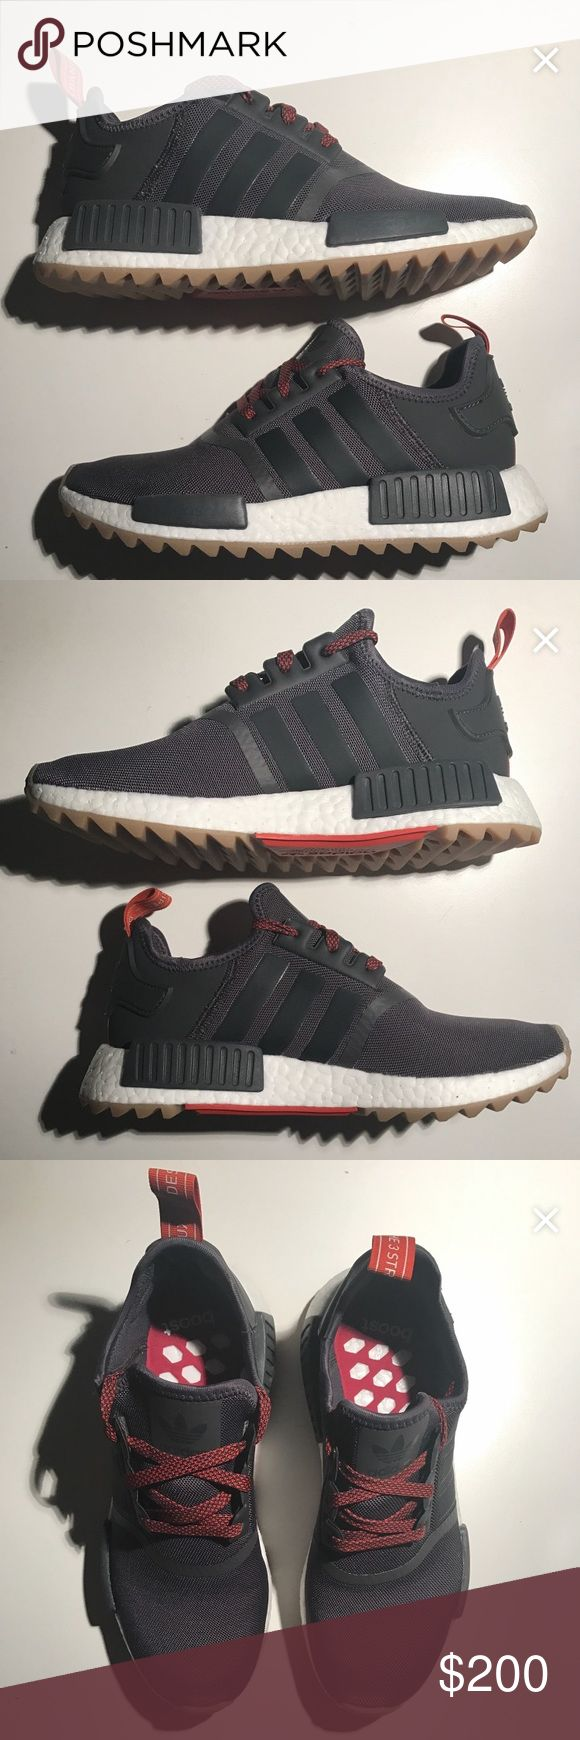 WMNS adidas NMD R1 Trail, size 9.5, VNDS Women's adidas NMD R1 Trail, Size 9.5 W. Fits a Mens 8.5. VNDS - Very Near Dead Stock - only worn once. In box, in hand ready to ship. Box in excellent condition. Comes with all original tissue paper/cardboard inserts. 100% Authentic, purchased through adidas website.    BOOST Adidas Shoes Athletic Shoes